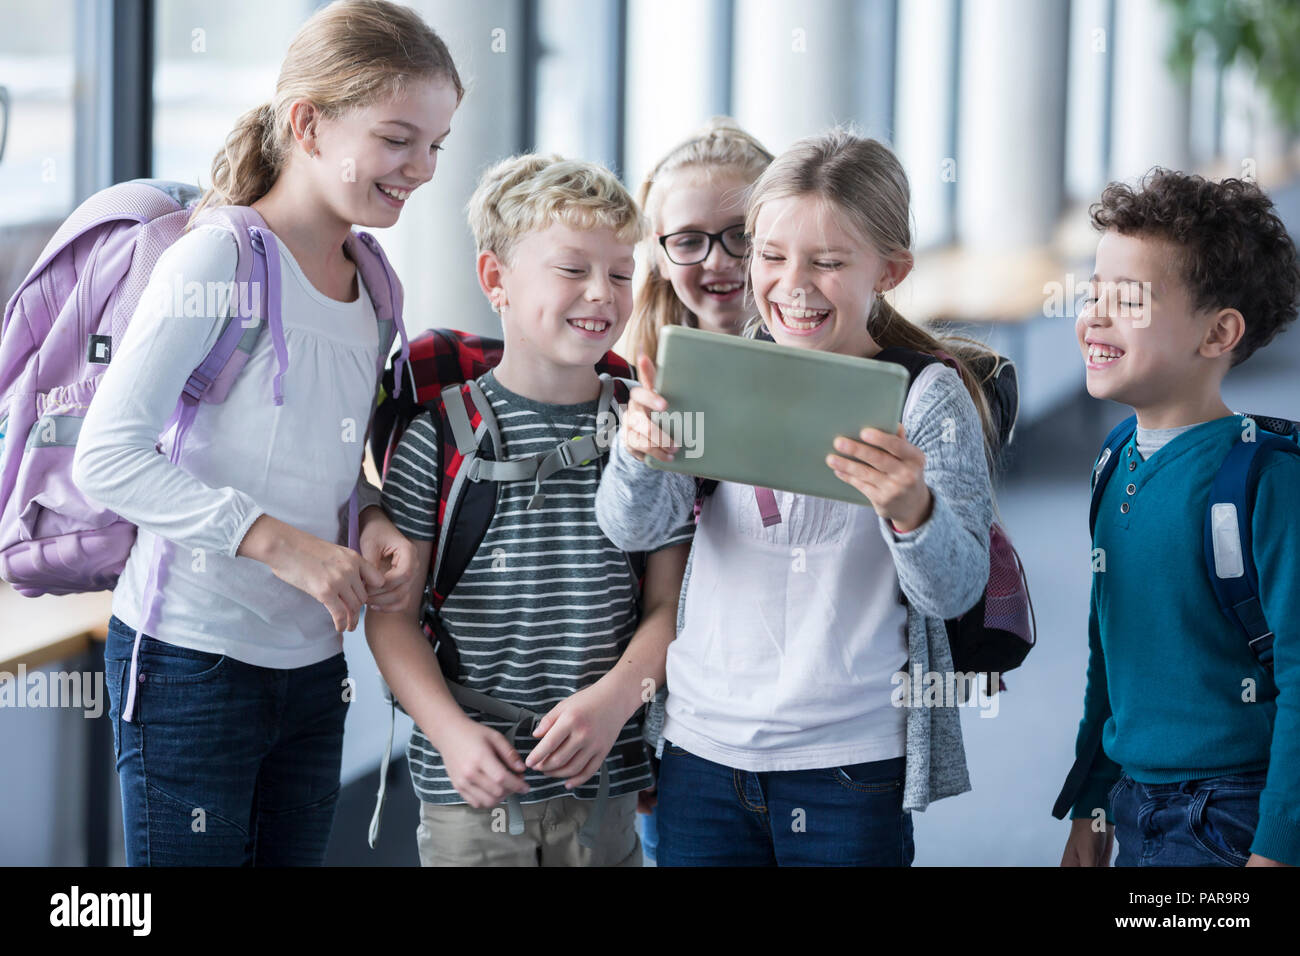 Laughing pupils looking at tablet on school corridor - Stock Image